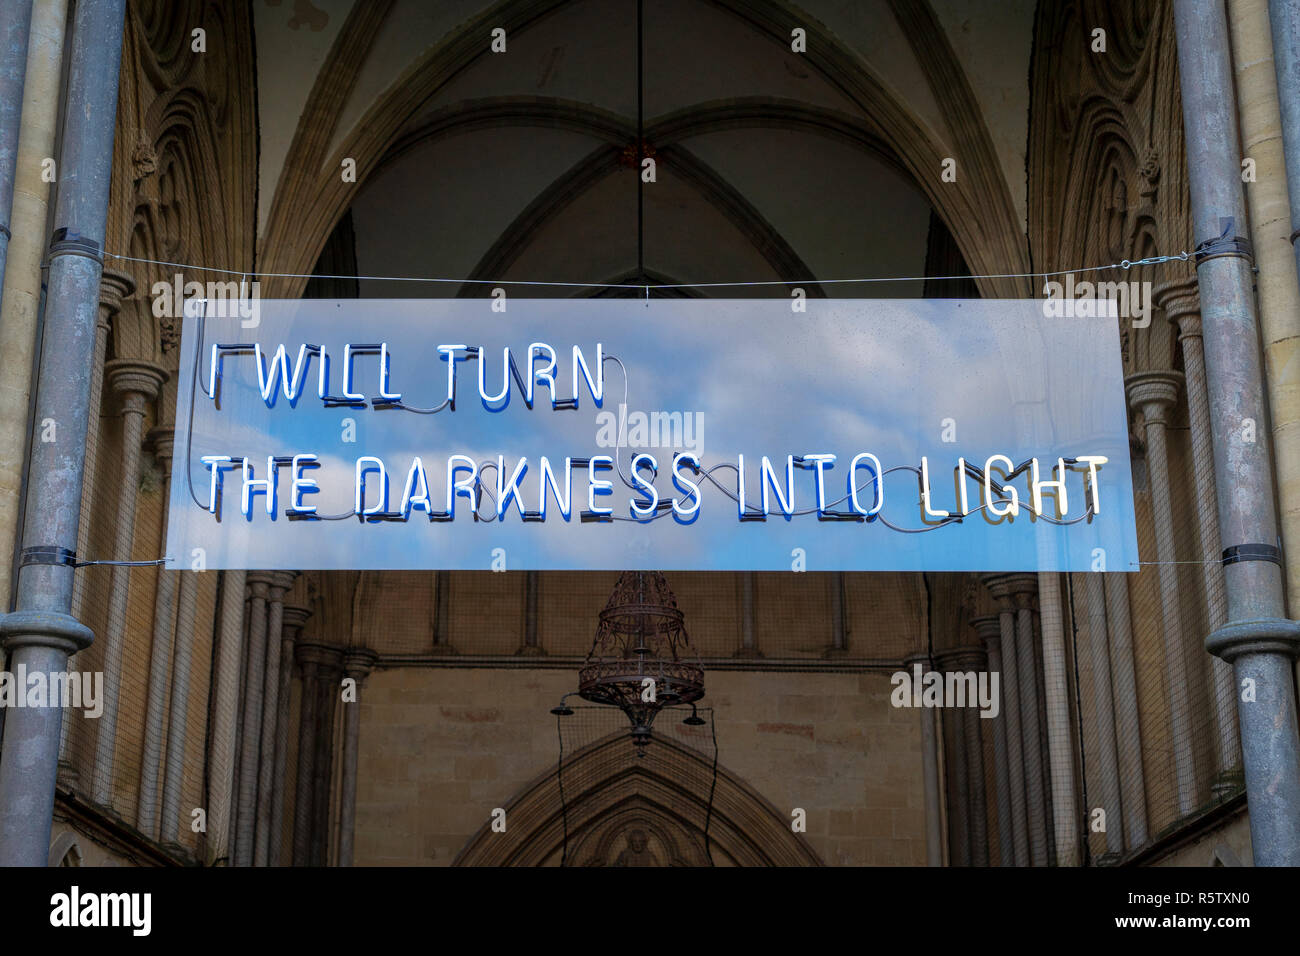 I will turn the darkness into light banner at the entrance to Salisbury Cathedral - Stock Image